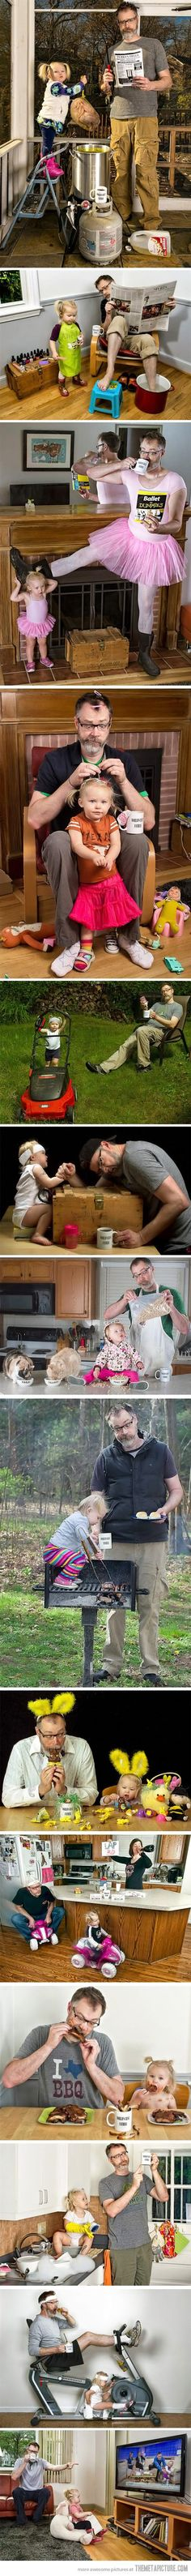 I love this dad's creativity and the fact that his wife is in the military. Imagine being deployed and getting some of these pictures. Instant joy!